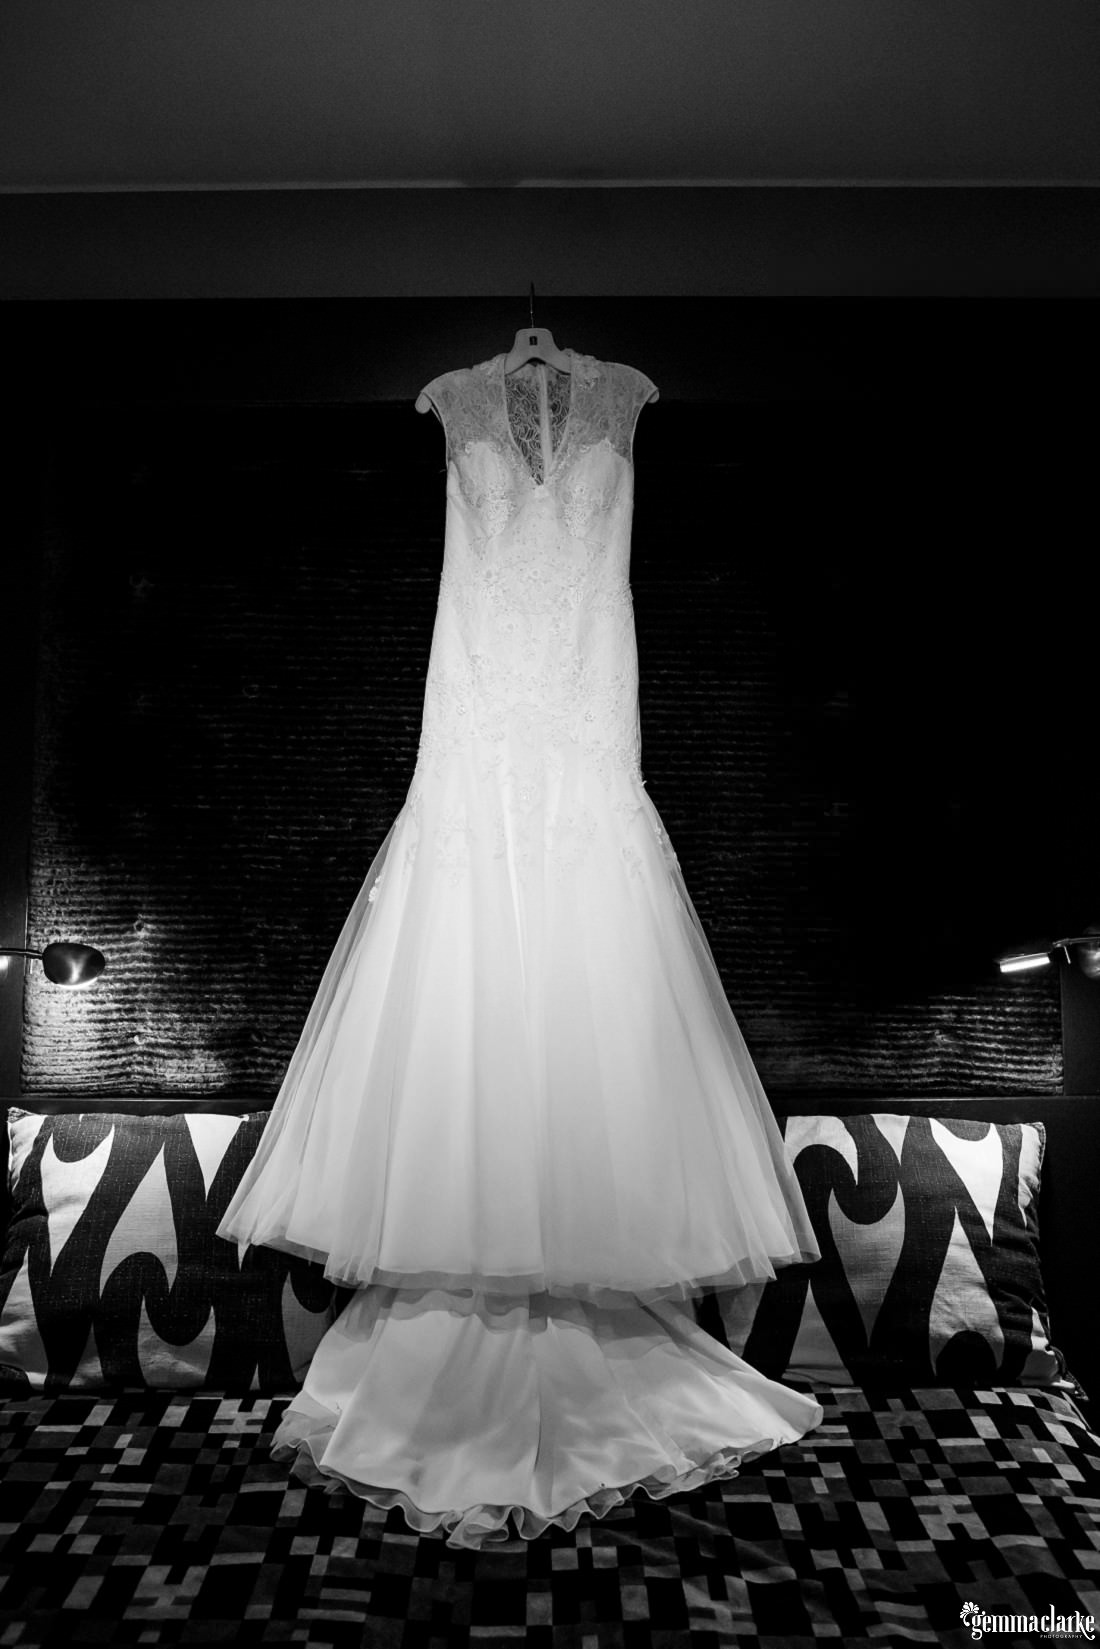 A white bridal gown hanging from a hanger over a bed